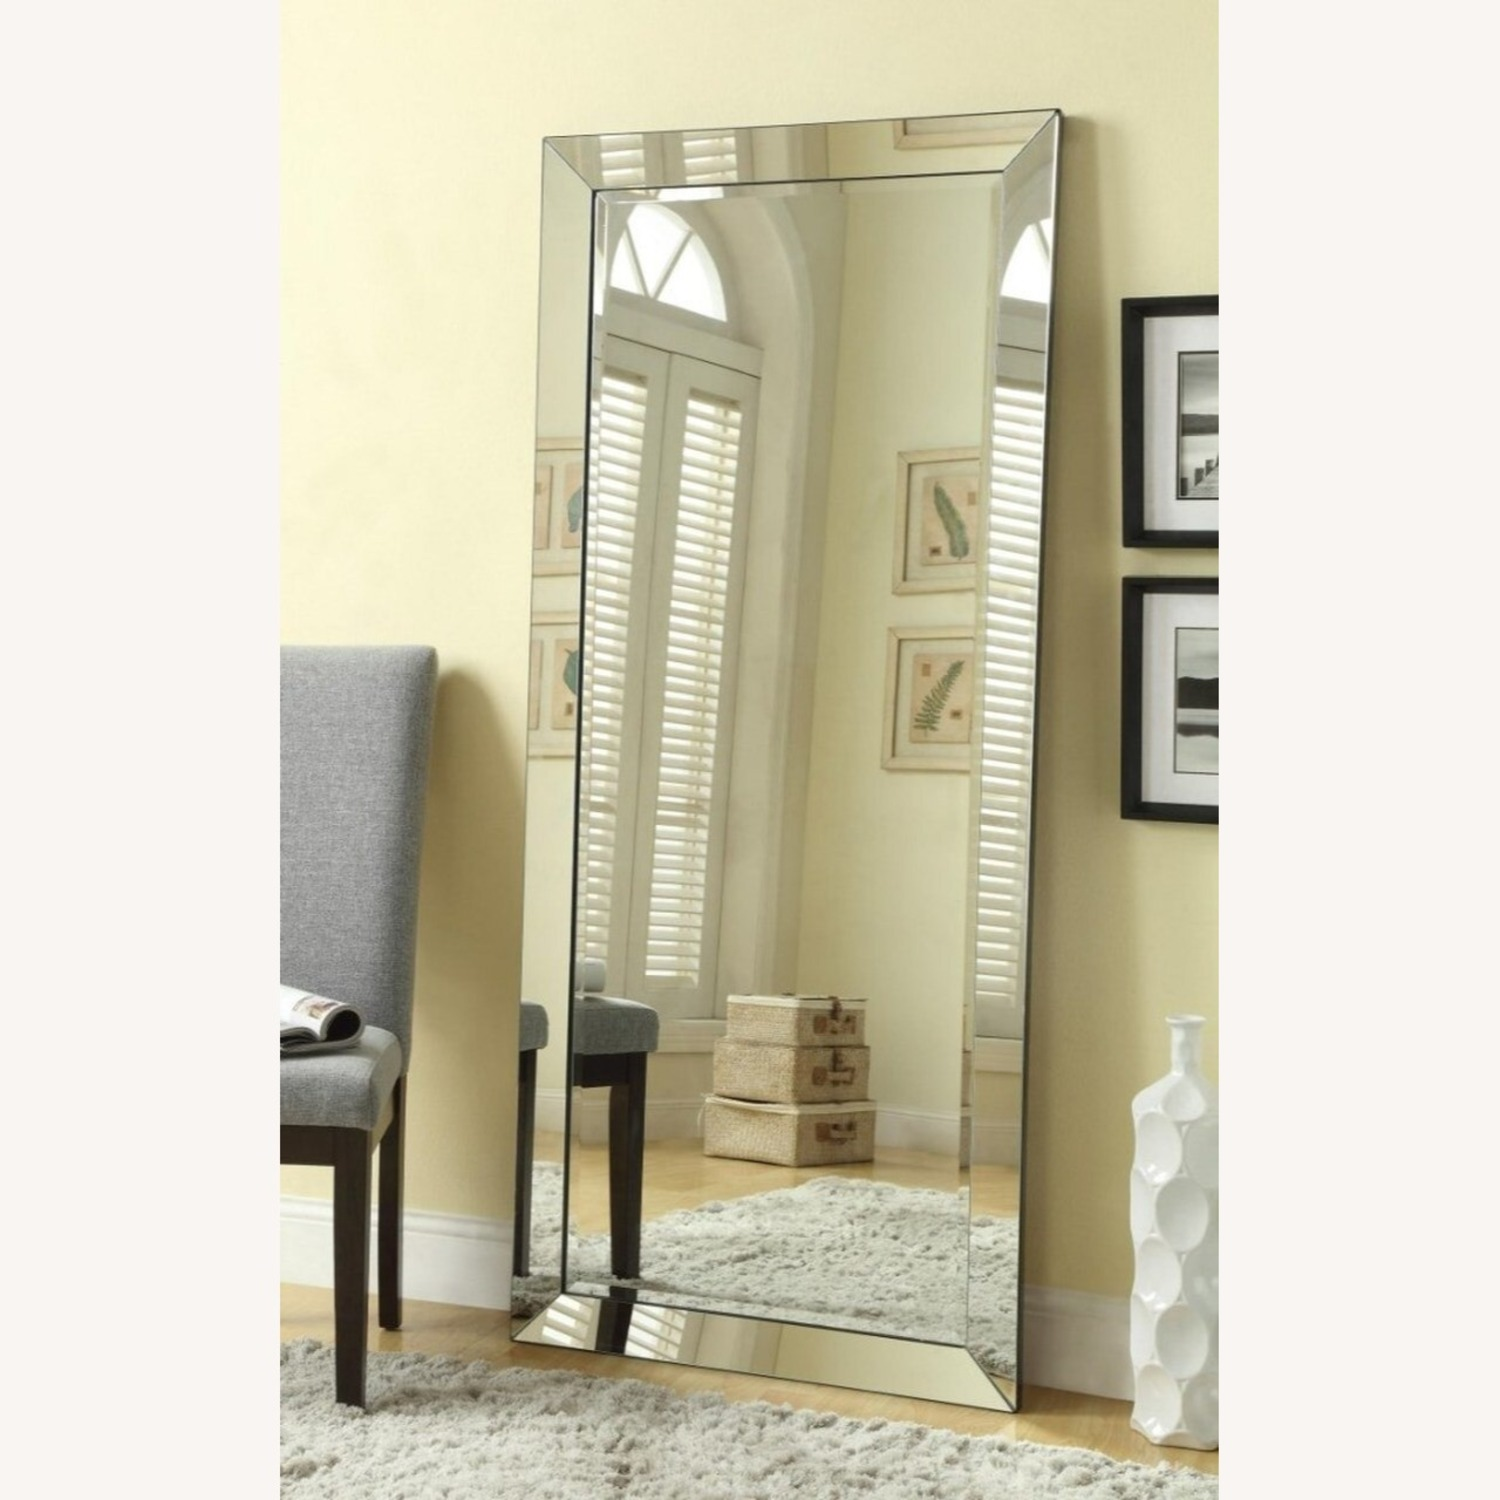 Contemporary Floor Mirror With Beveled Edges - image-2